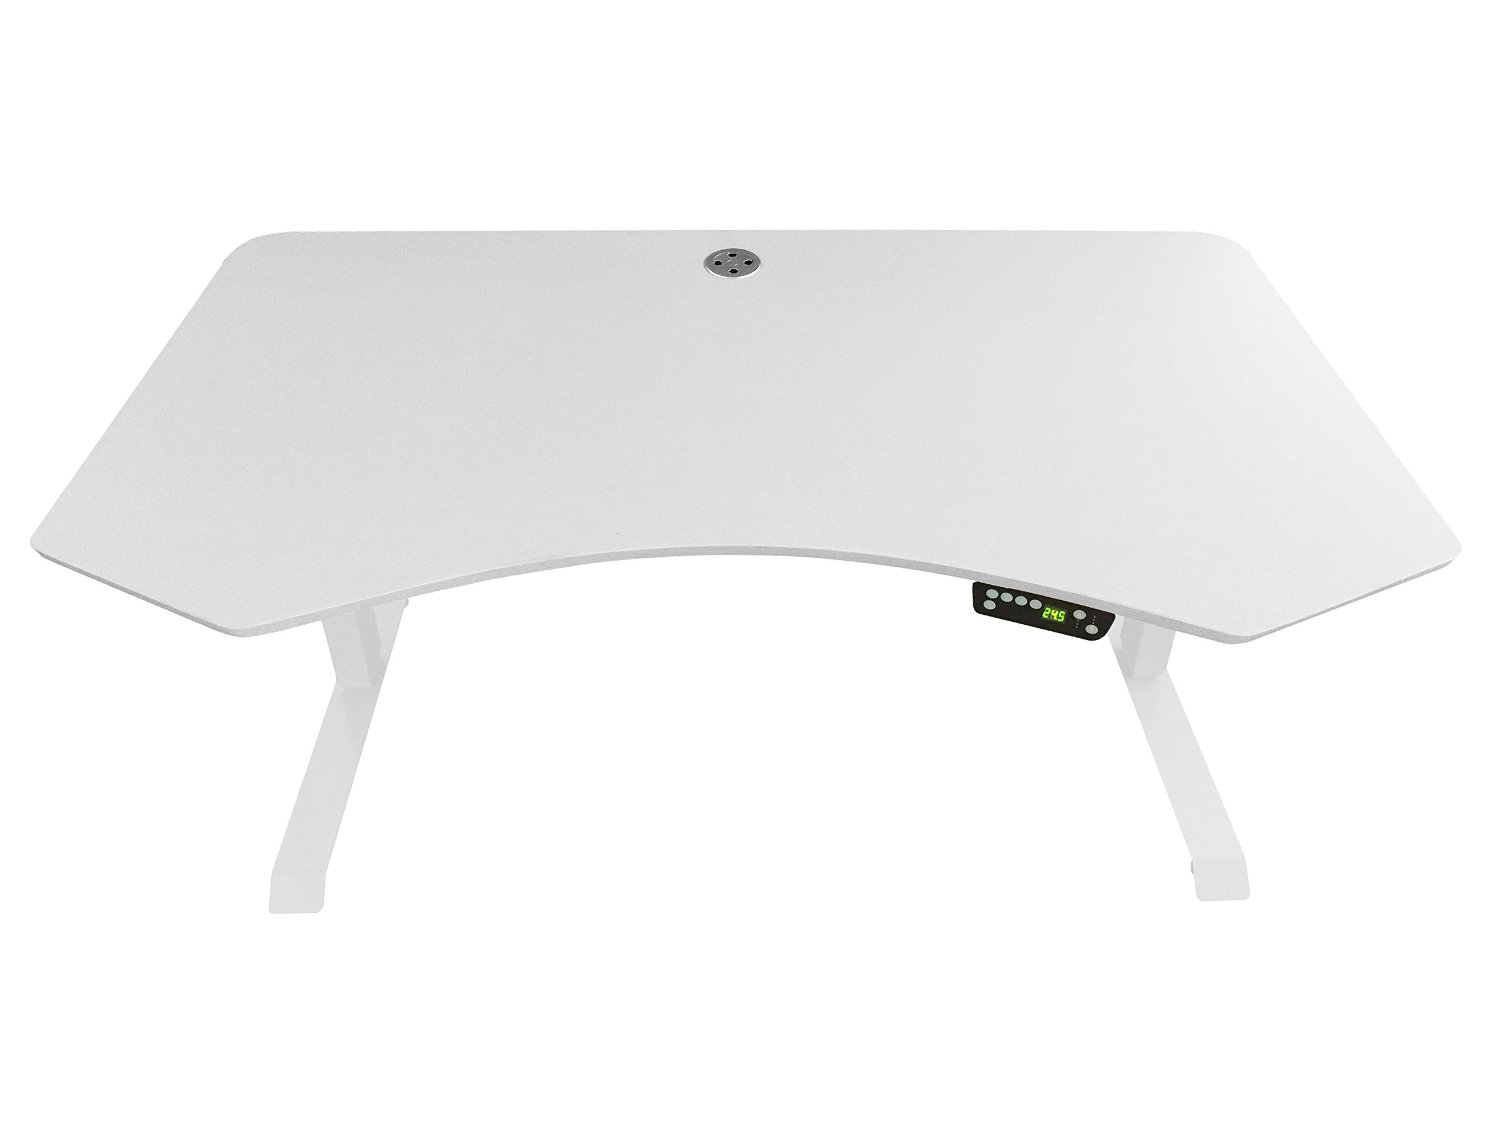 """Ergomax Office ABC592WT232WT Electric Height Adjustable Desk Set with 55"""" x 28"""" Desktop, White Tabletop White Base"""